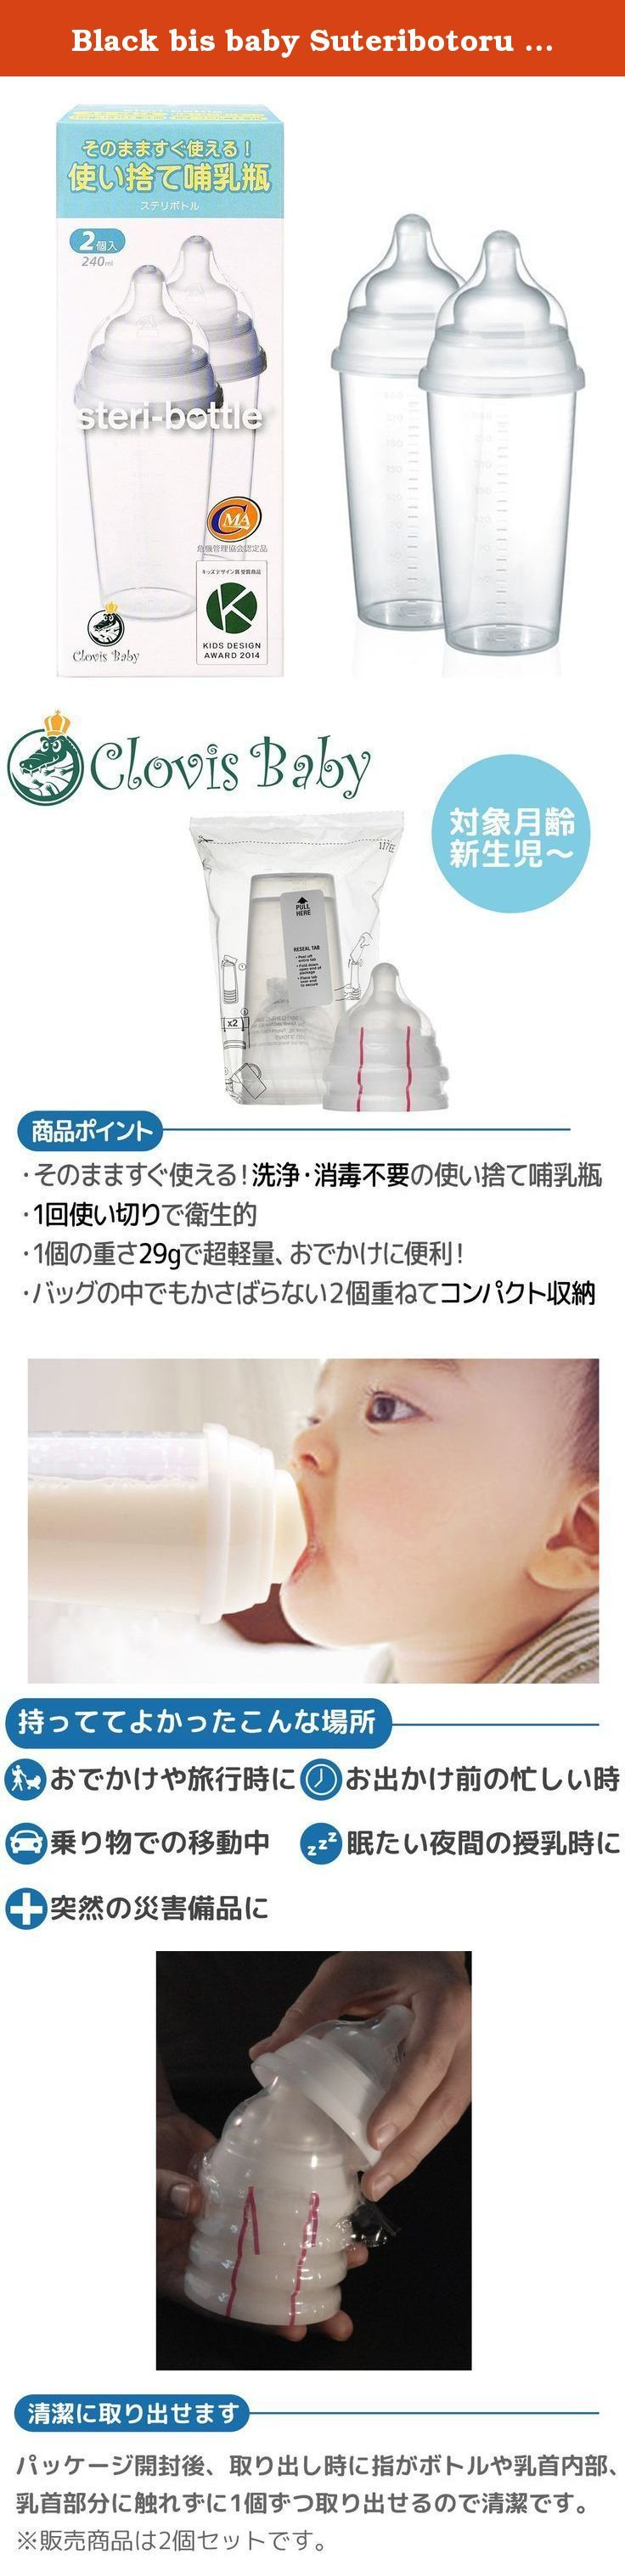 "Black bis baby Suteribotoru [Japan Genuine] disinfection unnecessary disposable baby bottle (240ml) Trial Set 2 pieces. [Target] 0 months to Drilled ready-to-use disinfection unnecessary disposable baby bottles ""Suteribotoru"". A handy set of two to carry. [Material] Food: polypropylene cap: polypropylene bottle: polypropylene Nipple: TPE (thermoplastic elastomer -) Bottle is a cup type there is a sense of stability. Scale is easy to see, you can milk formula in the exact amount. Because…"